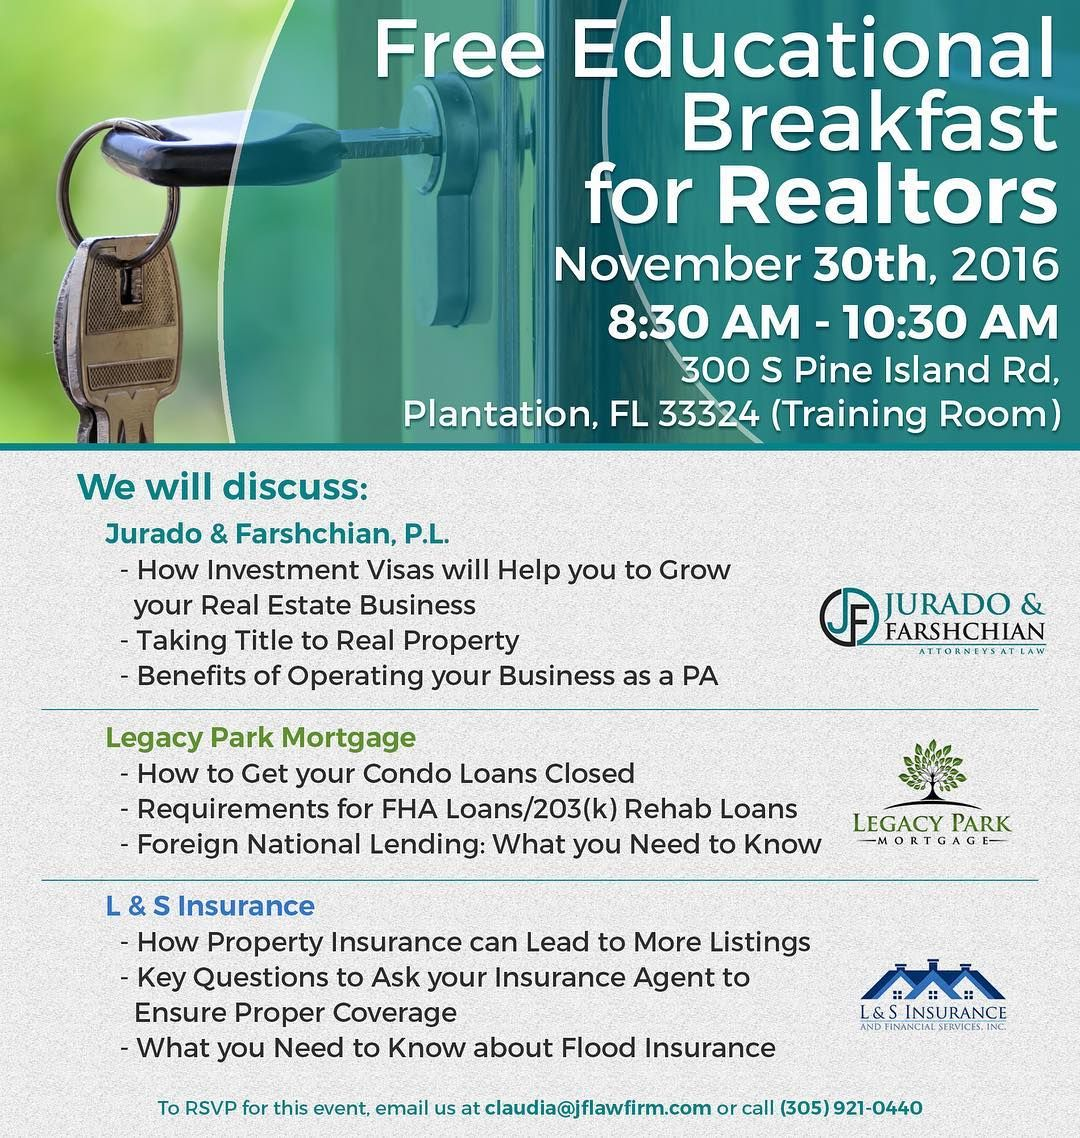 Hey Realtors Jflawfirm Along With Legacy Park Mortgage And L S